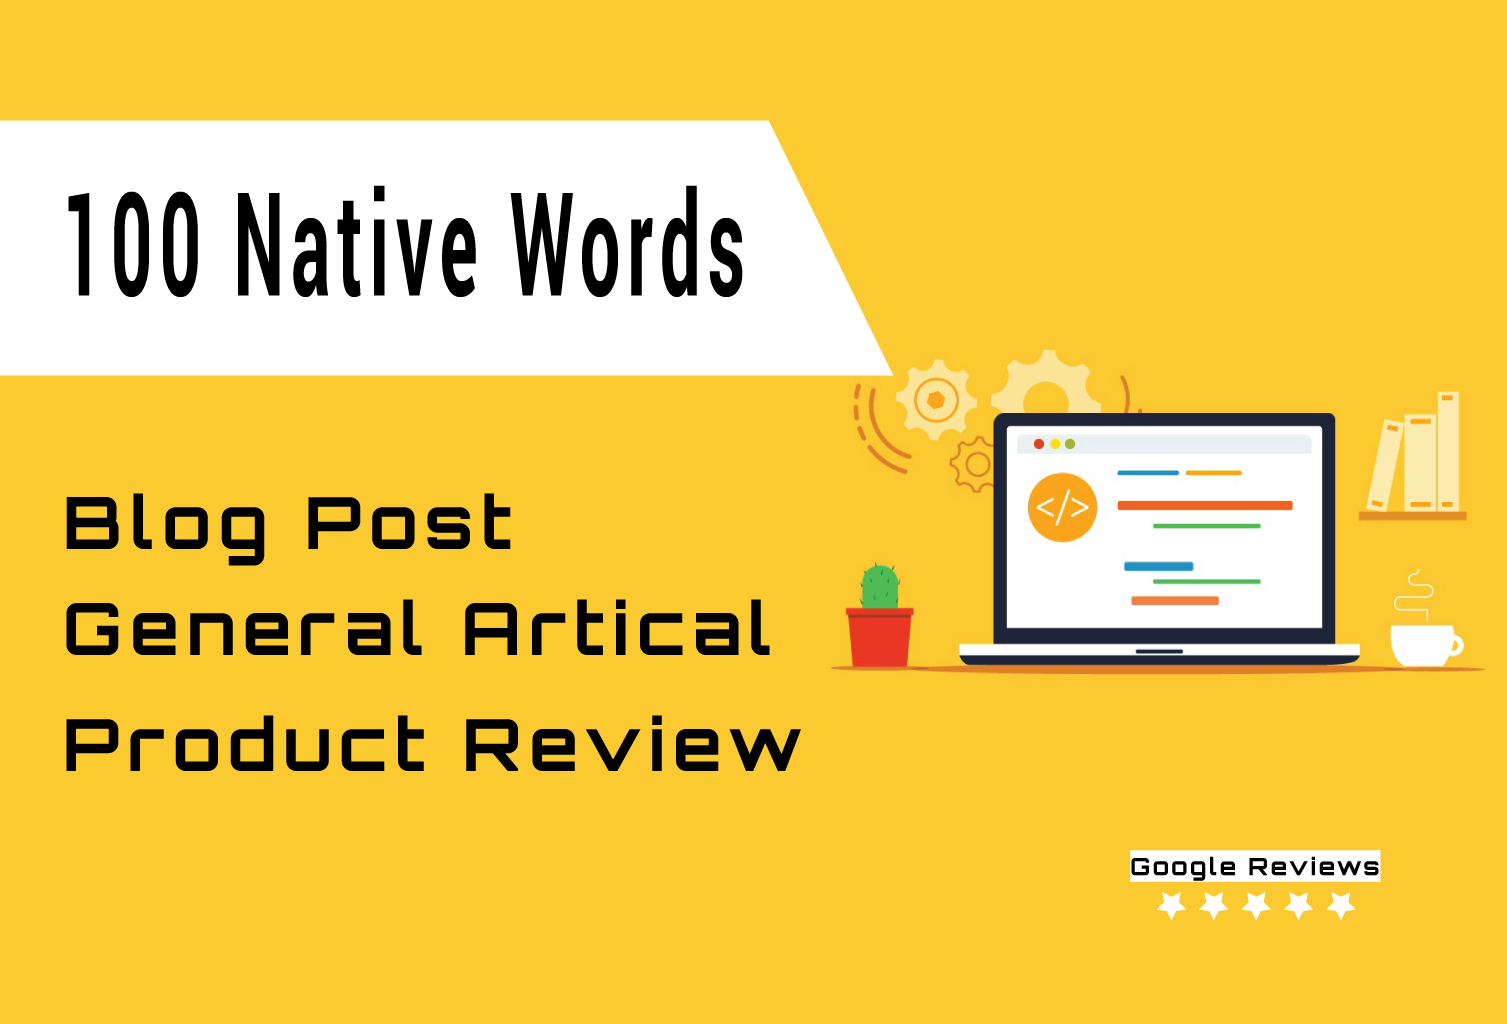 100 Native Words Articles or Product Reviews